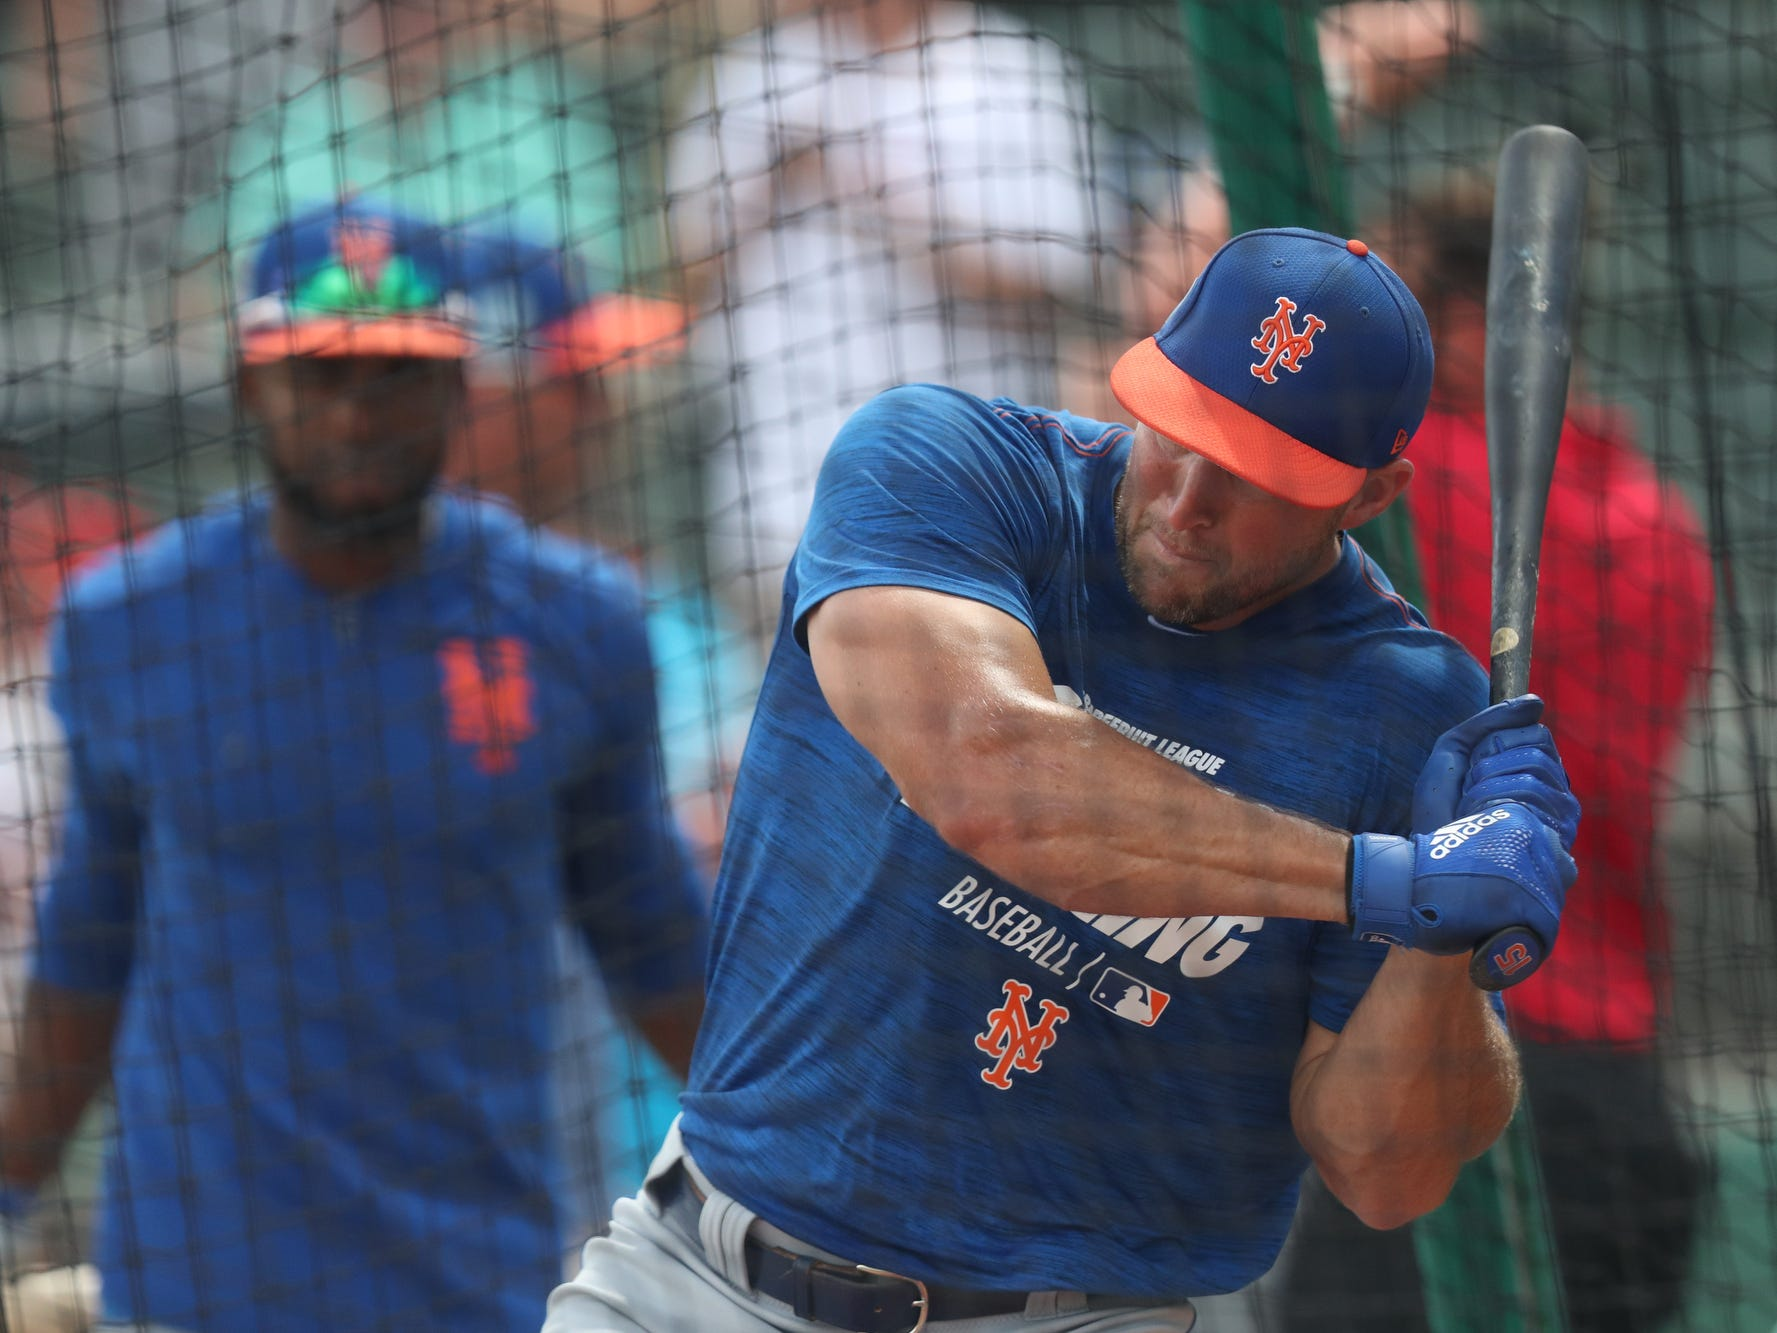 New York Mets' Tim Tebow warms up before playing the Boston Red Sox on Saturday at JetBlue Park in Fort Myers.